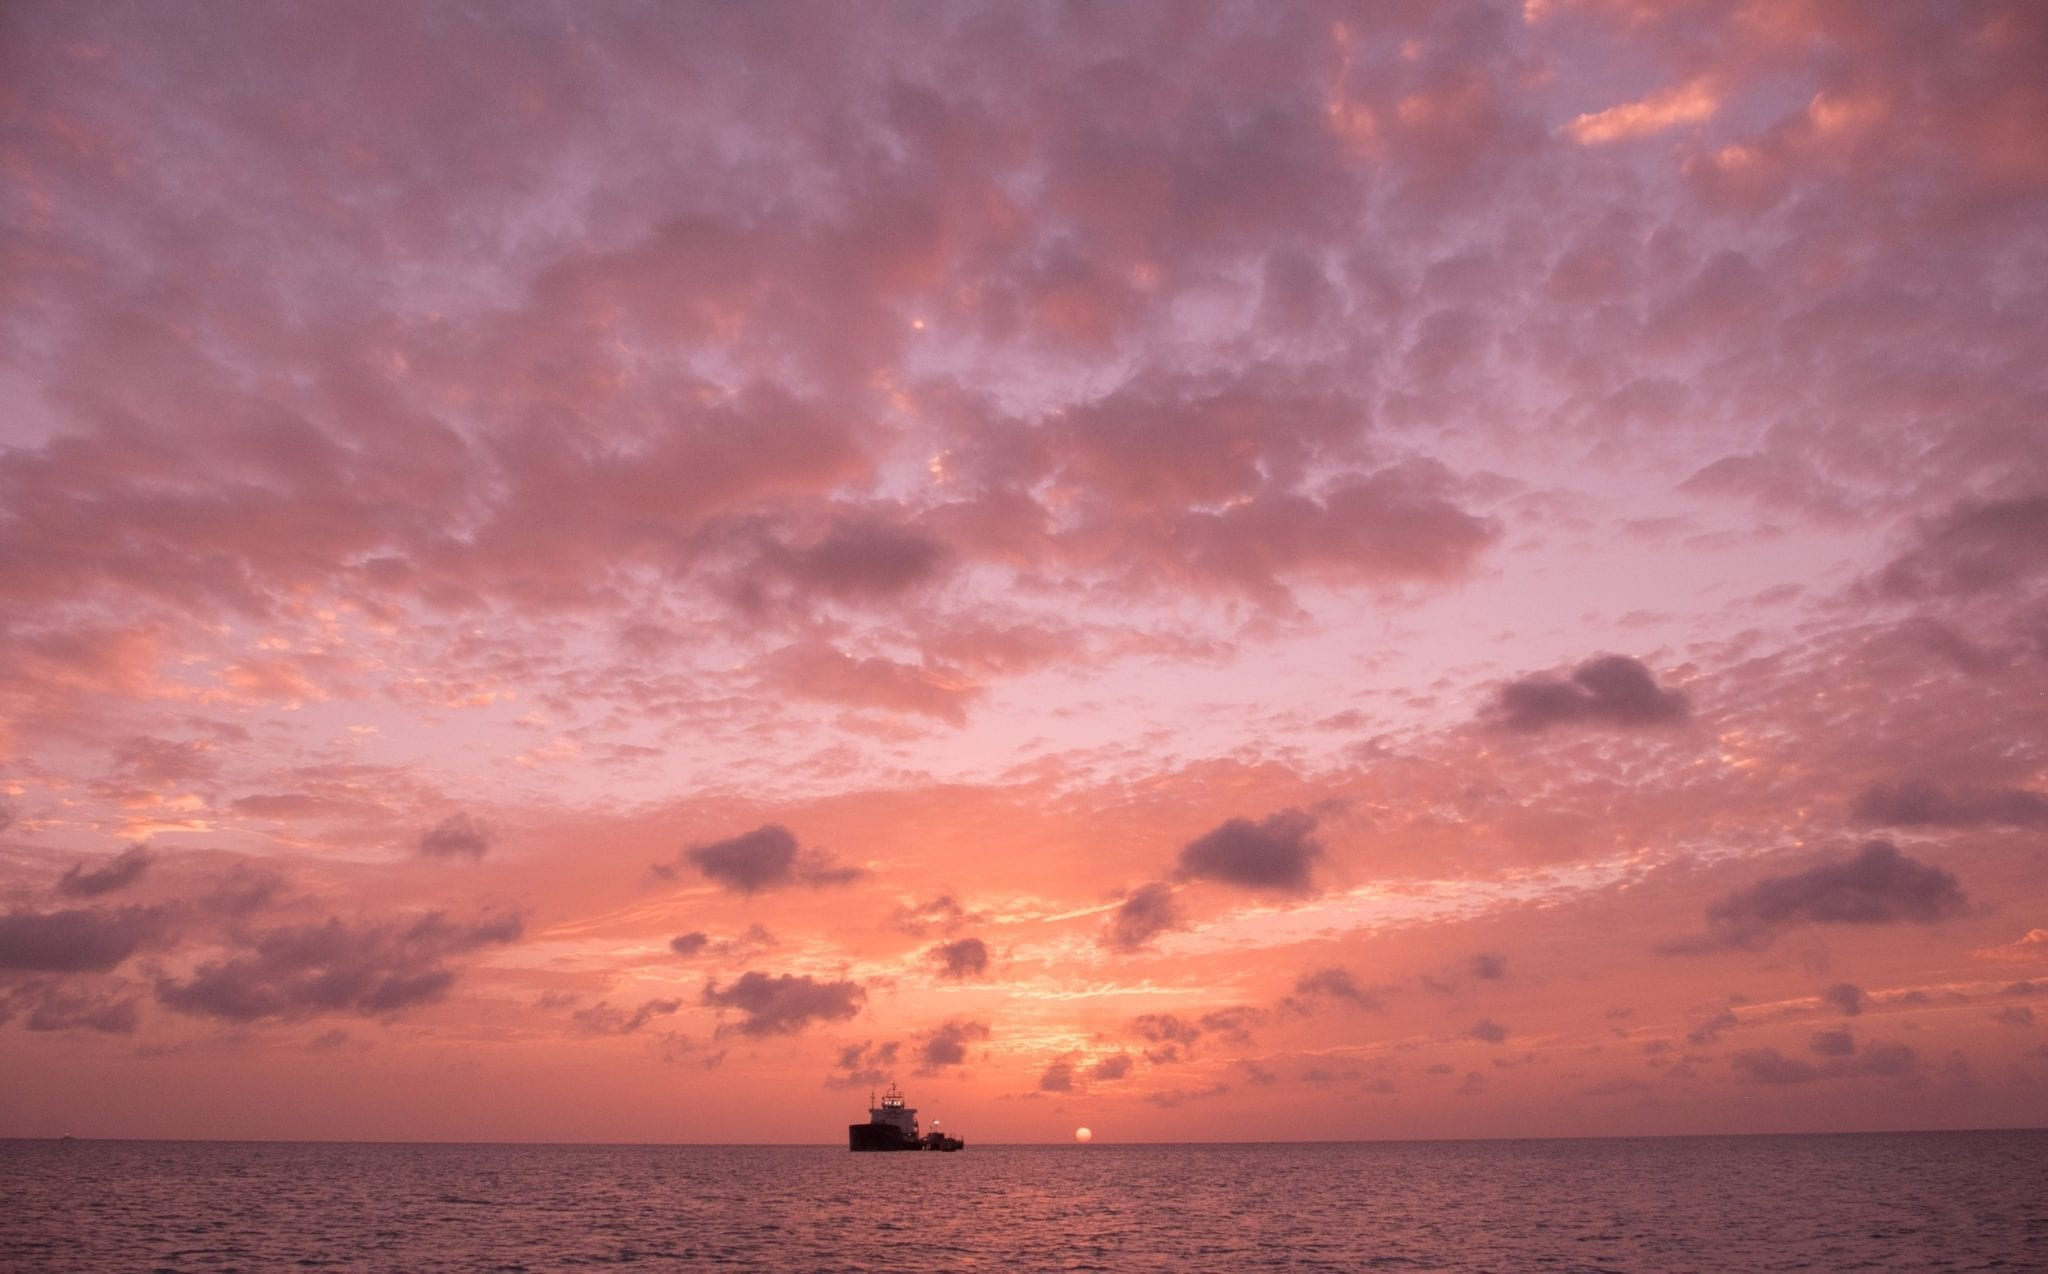 A pink sunset with lots of fluffy purple clouds in Antigua. At the bottom is the sea, a black silhouette of a boat, and a tiny yellow sun.